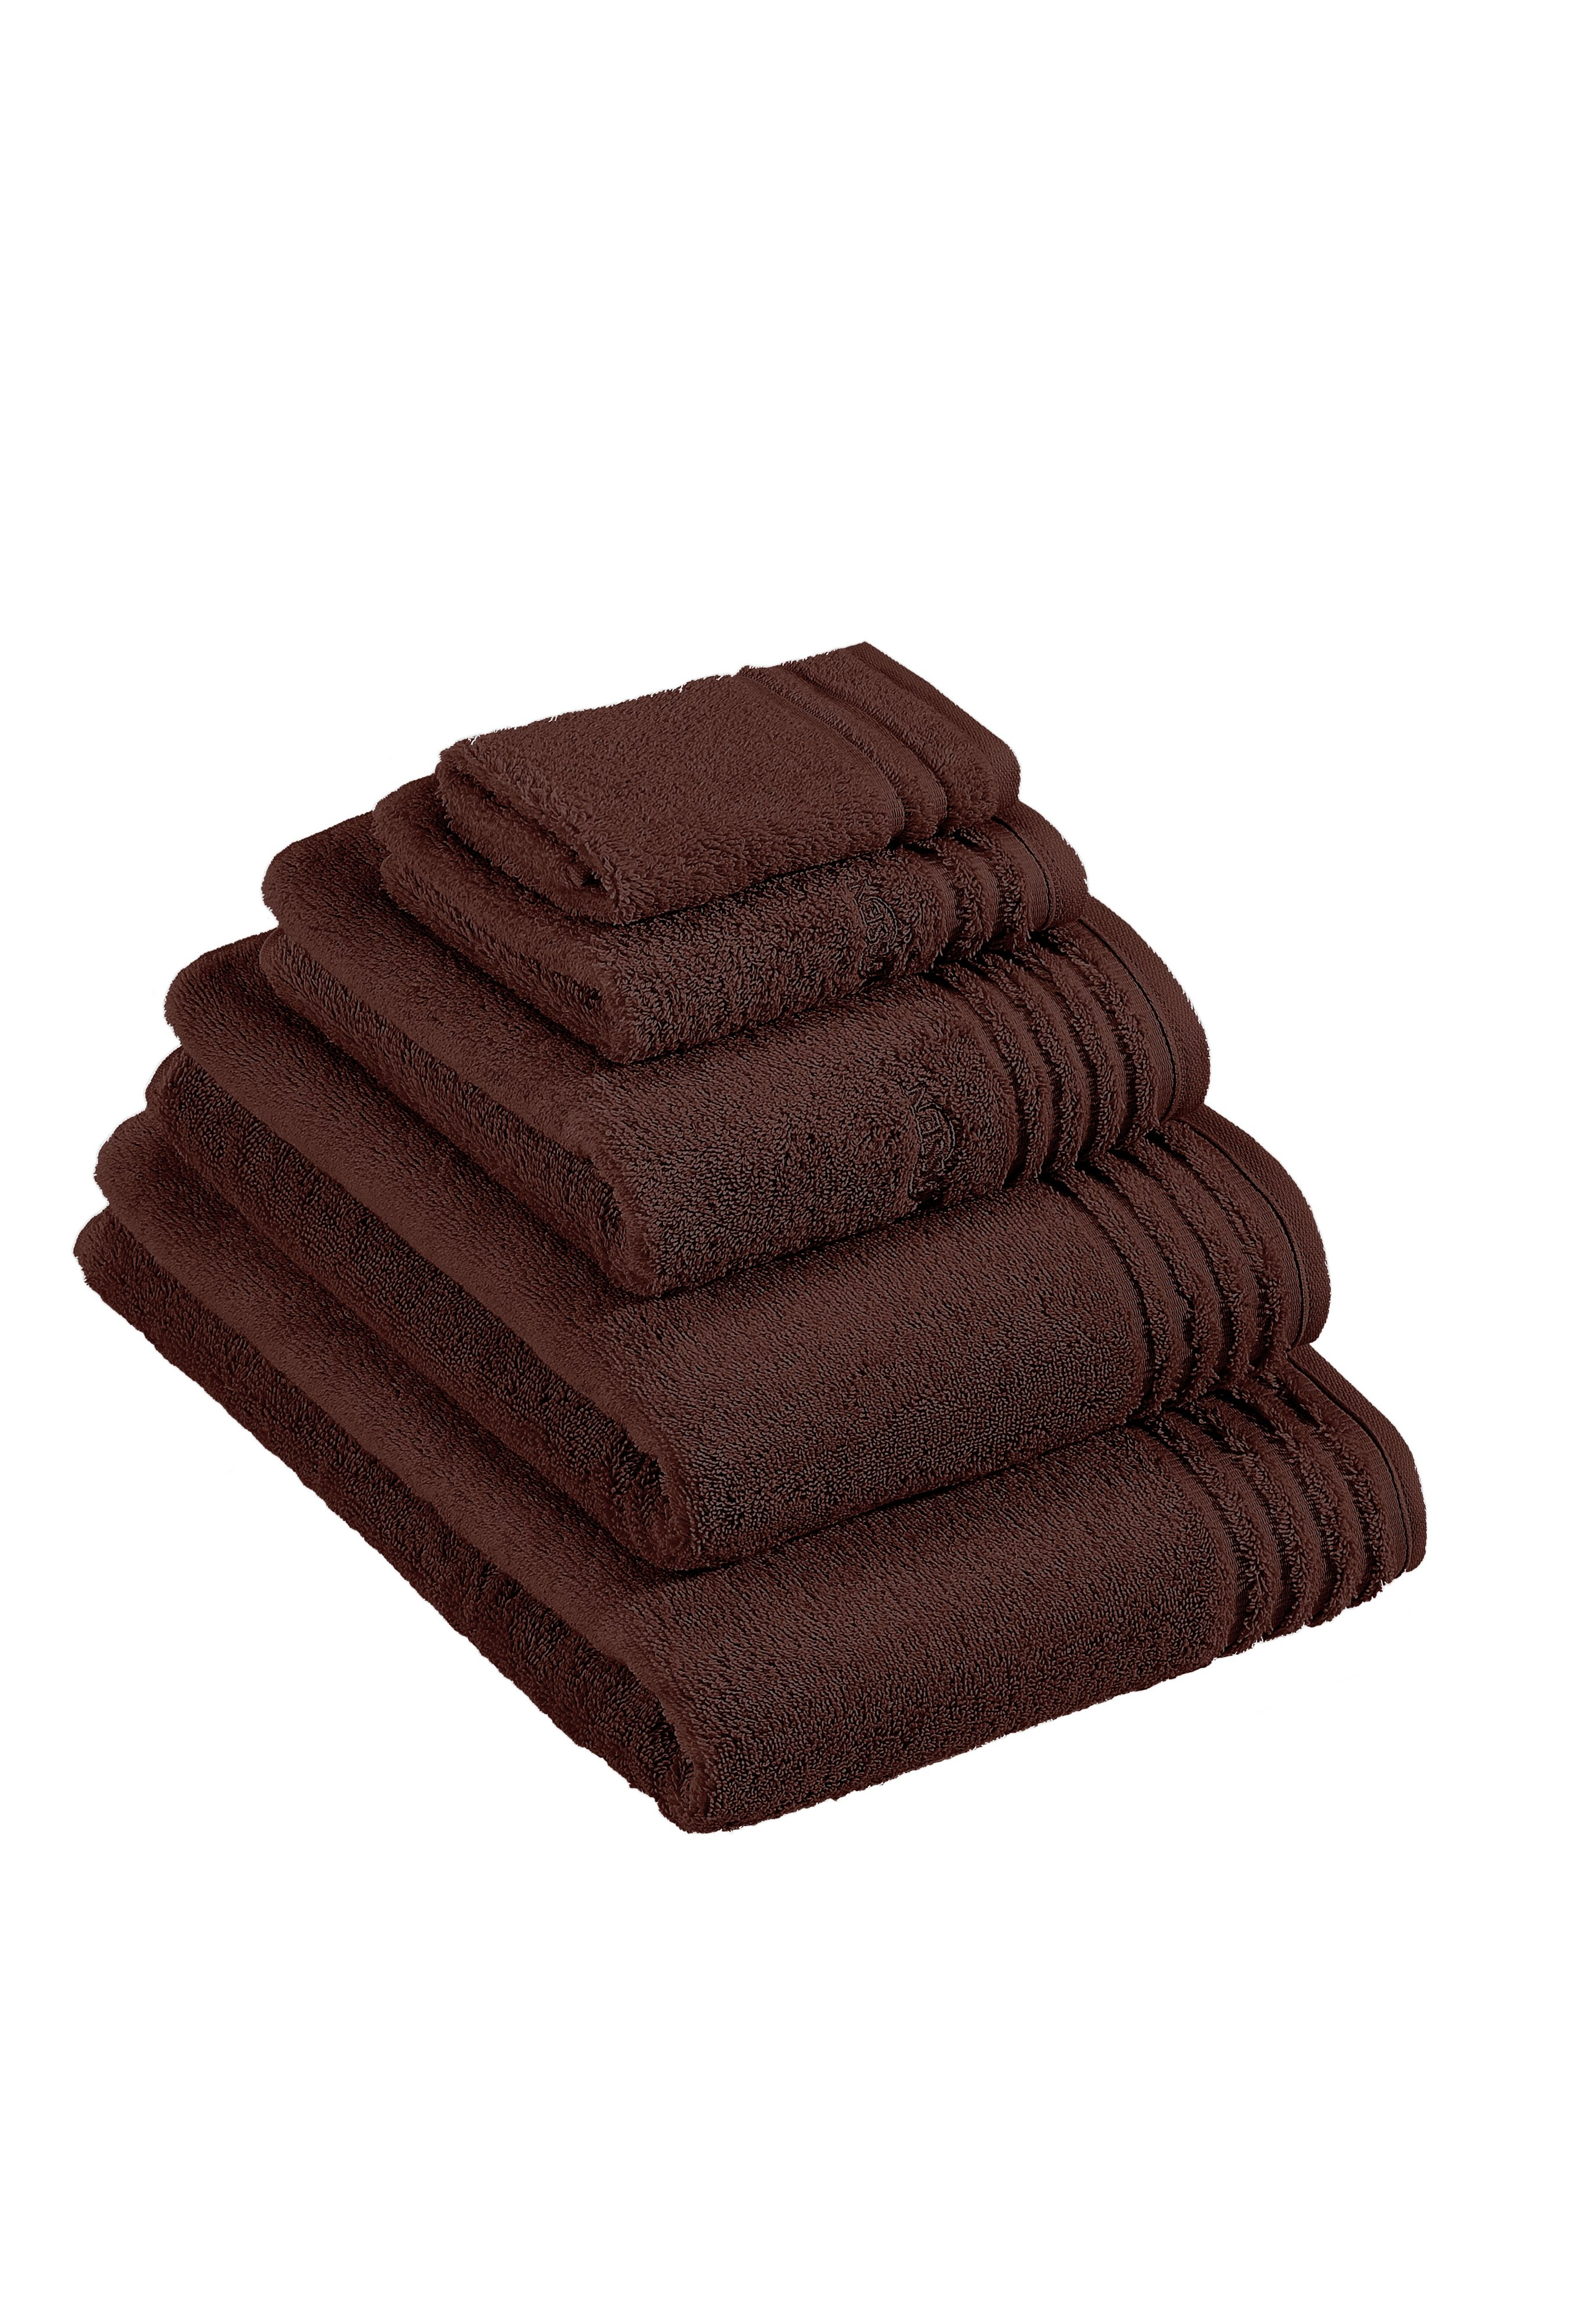 Vienna towel range in dark chocolate